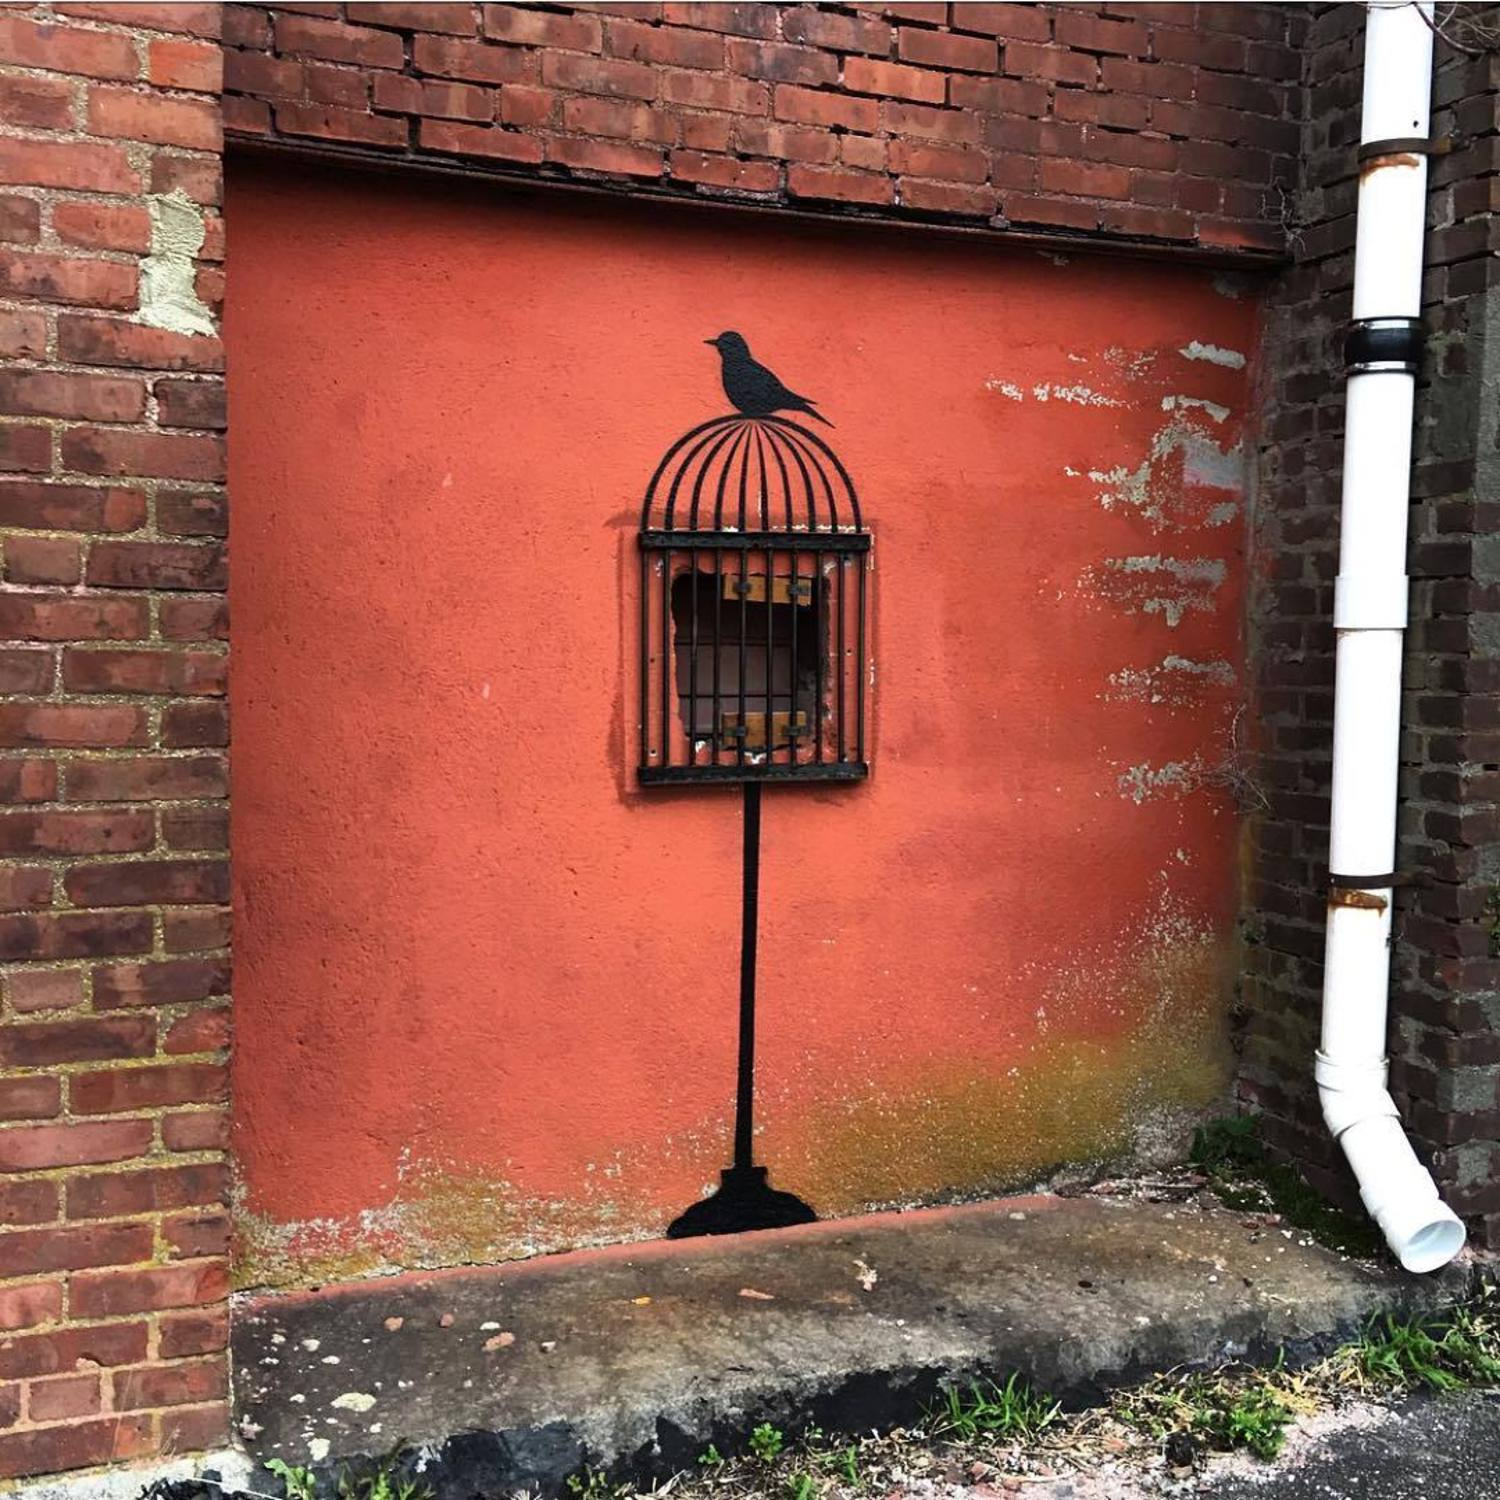 TAKE THESE BROKEN WINGS AND LEARN TO FLY... #blackbird #freedom #uncaged #newbedford #massachusetts #streetart #tombobnyc #stencil #publicart #nbma #🕊#❤️ #mayaangelou #tombob #stencilart #birdcage